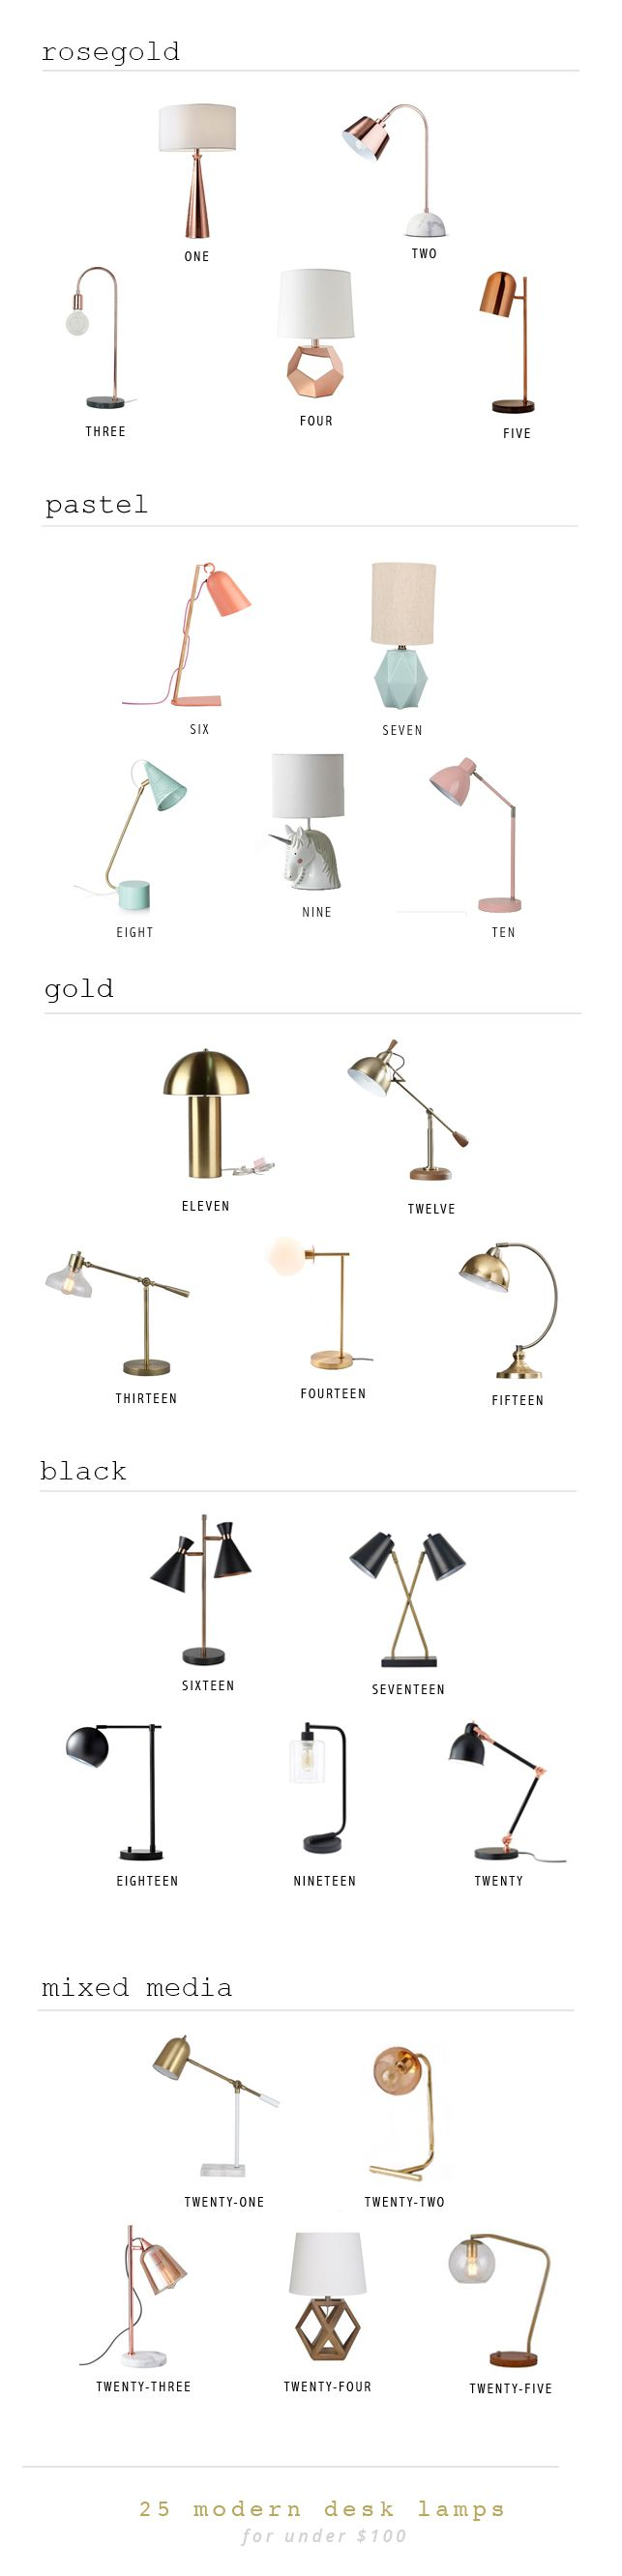 25 Modern Desk Lamps for under $100